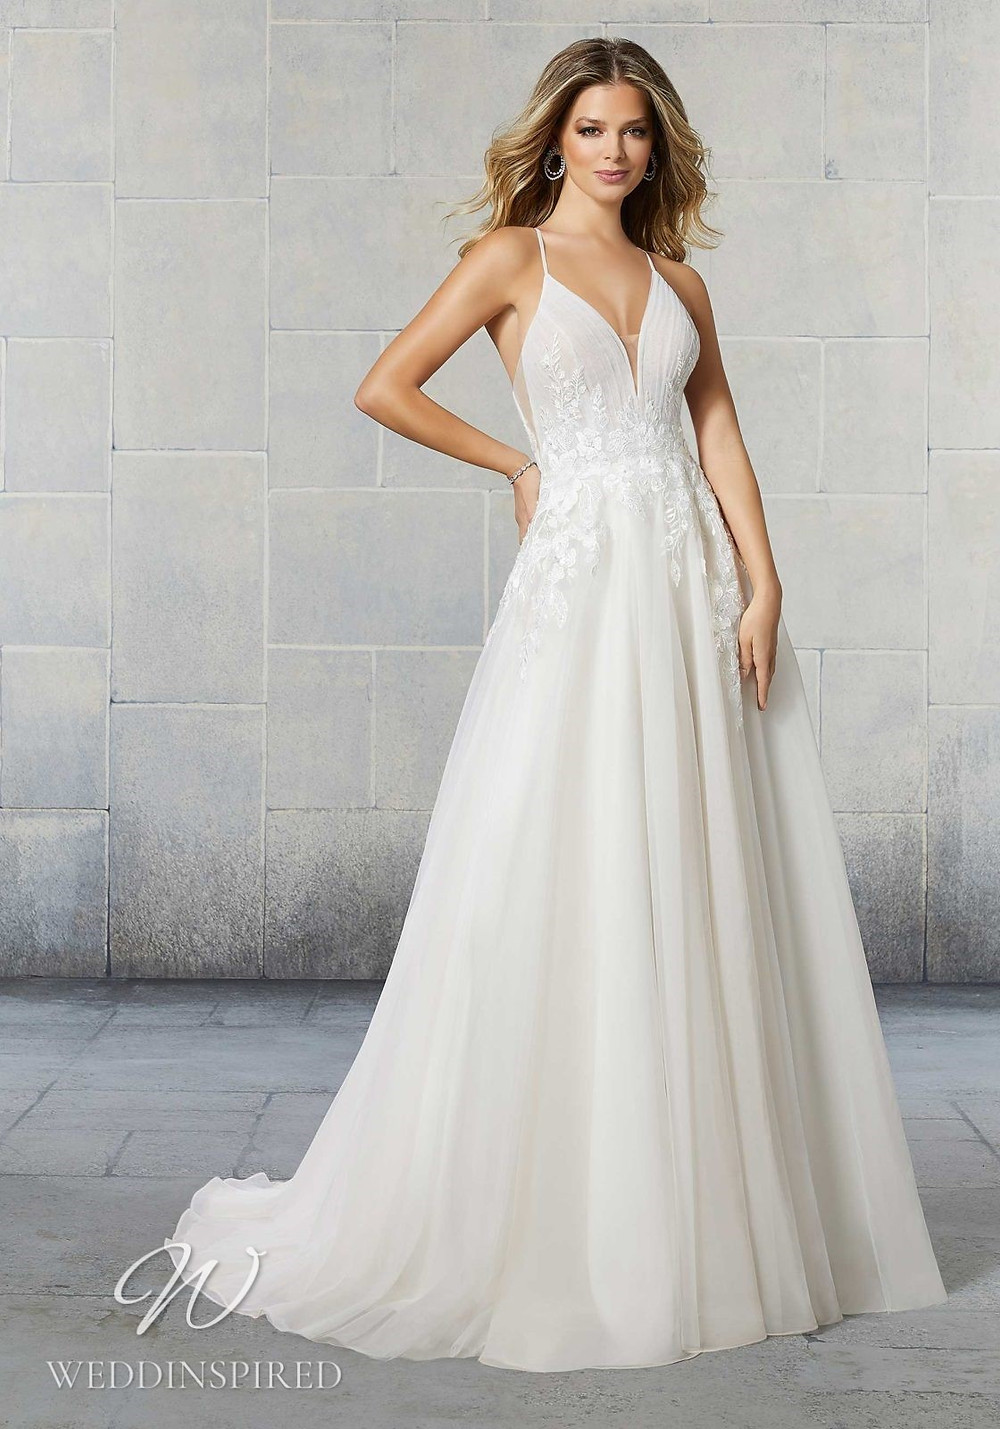 A Madeline Gardner tulle A-line wedding dress with straps